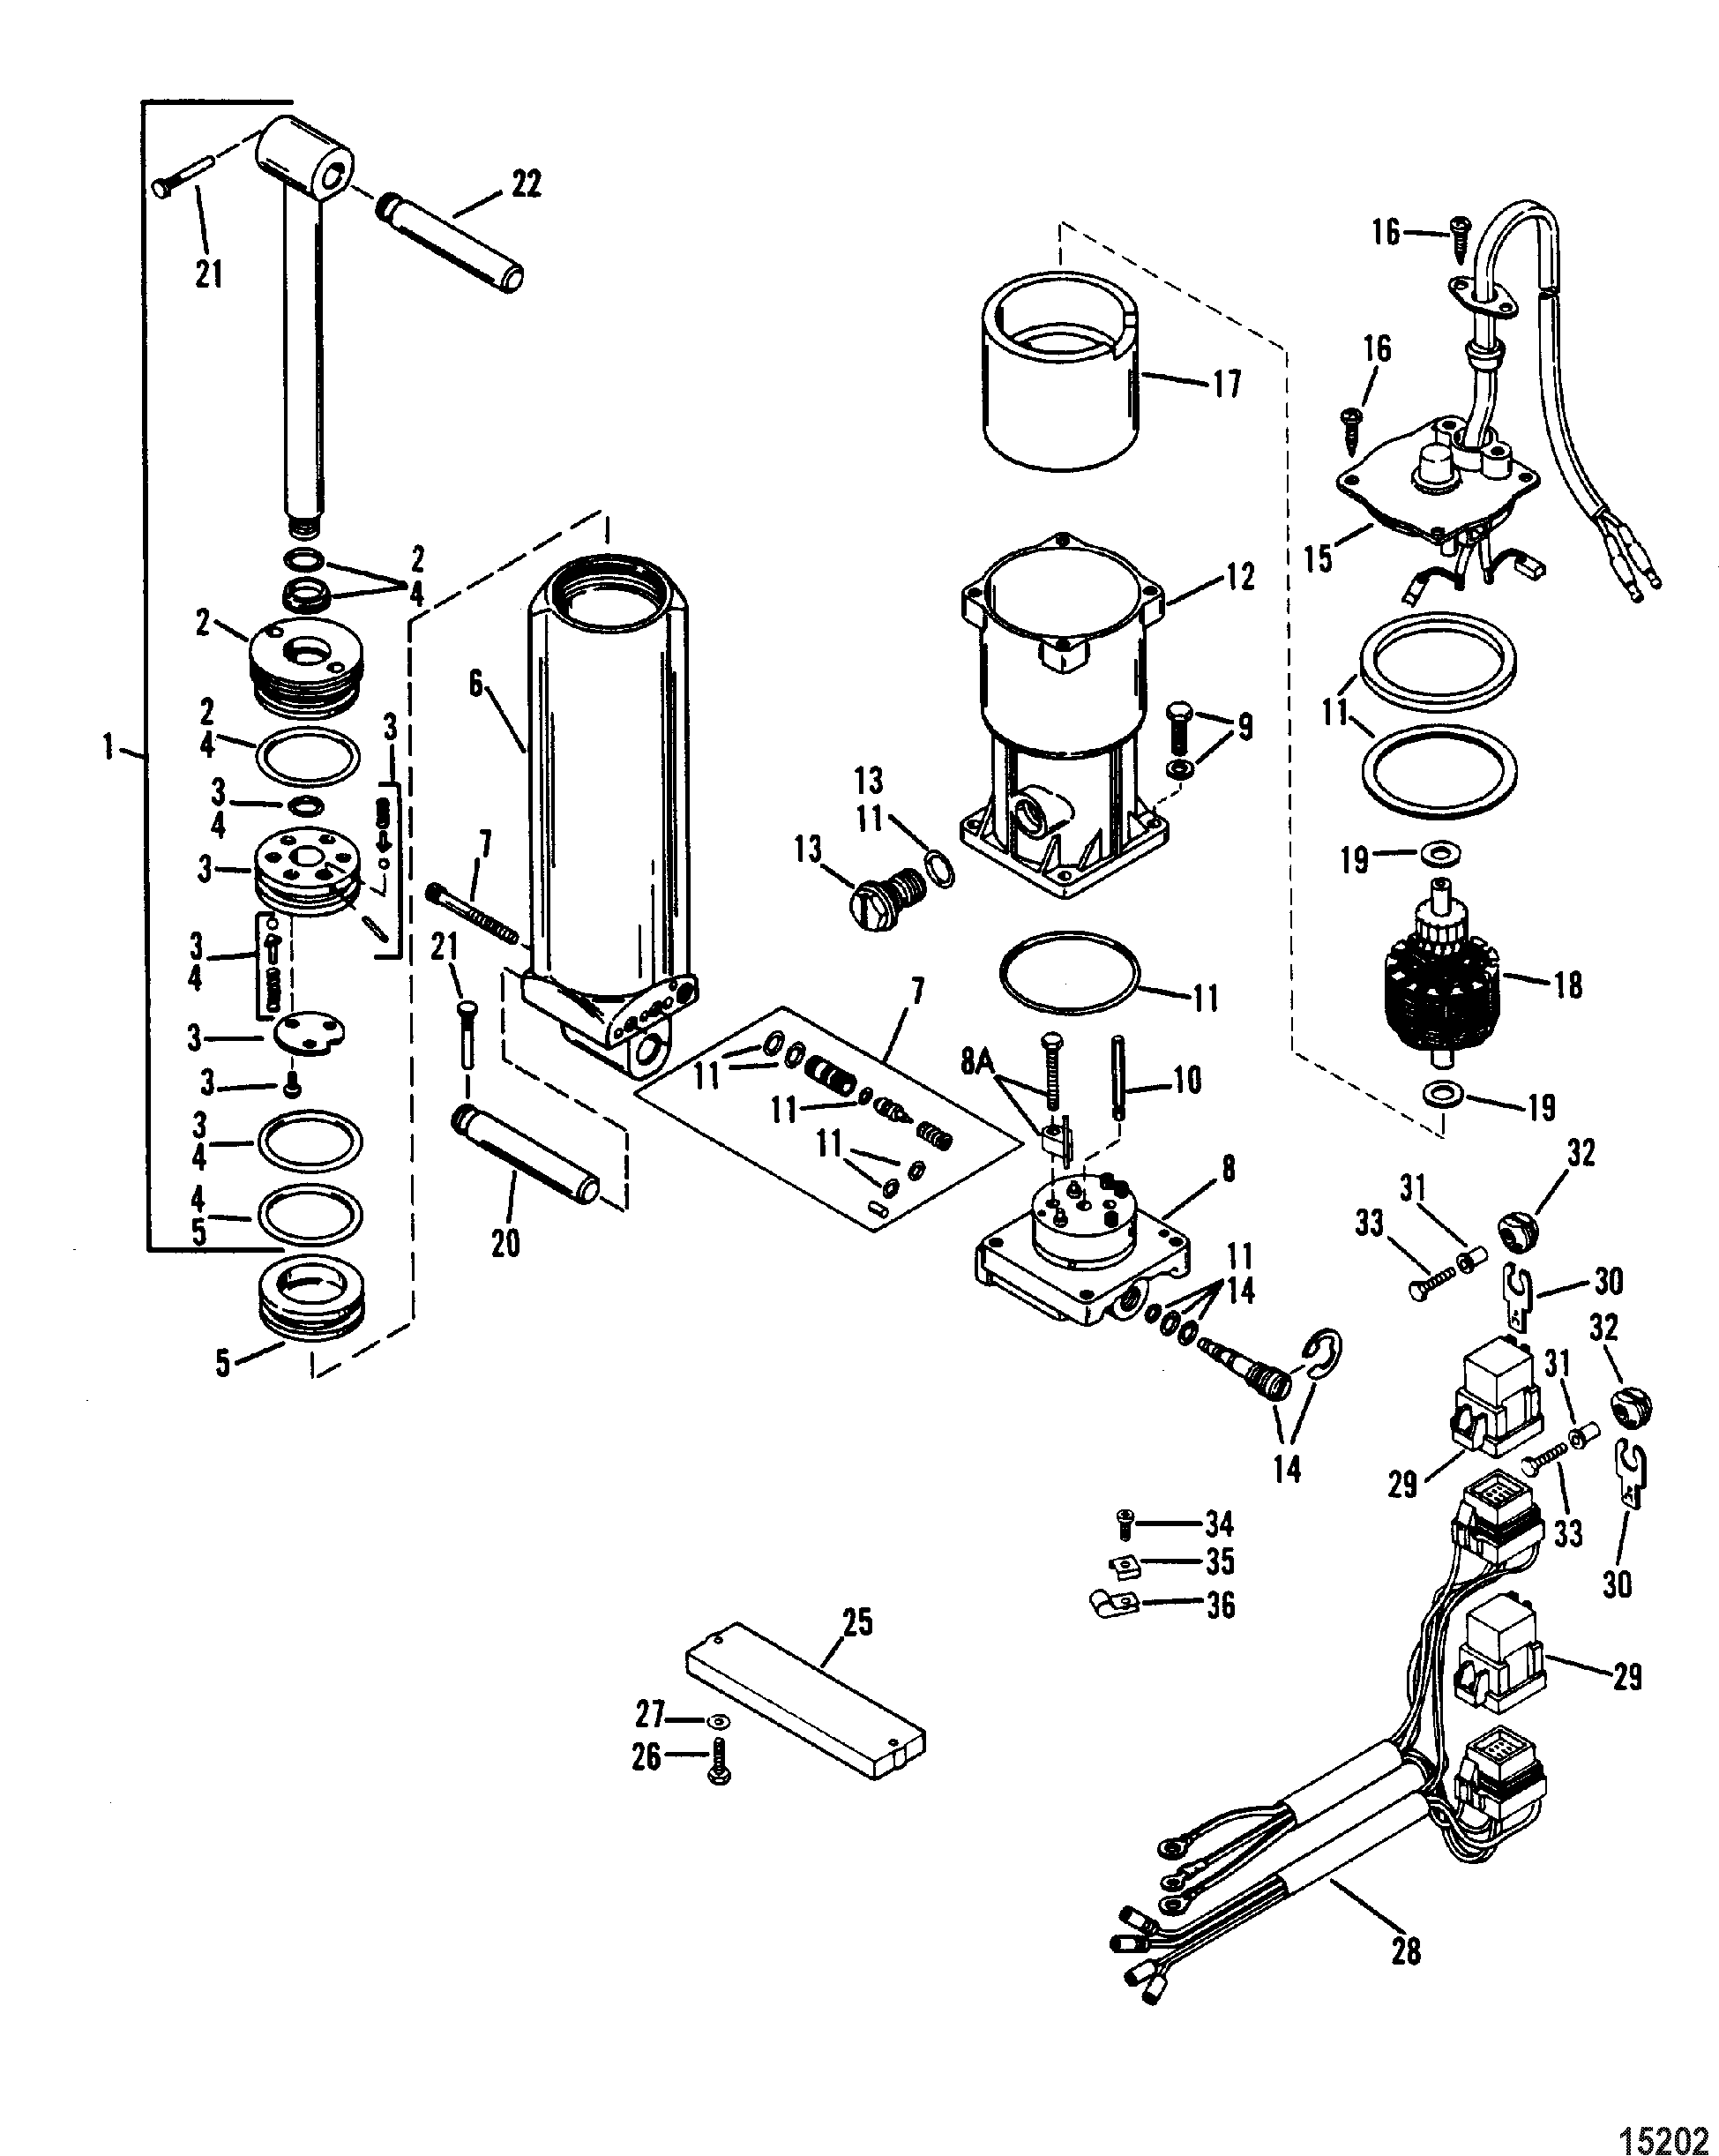 mercury 115 hydraulic trim wiring free download wiring diagrams mercury 115  optimax service manual marvelous mercury